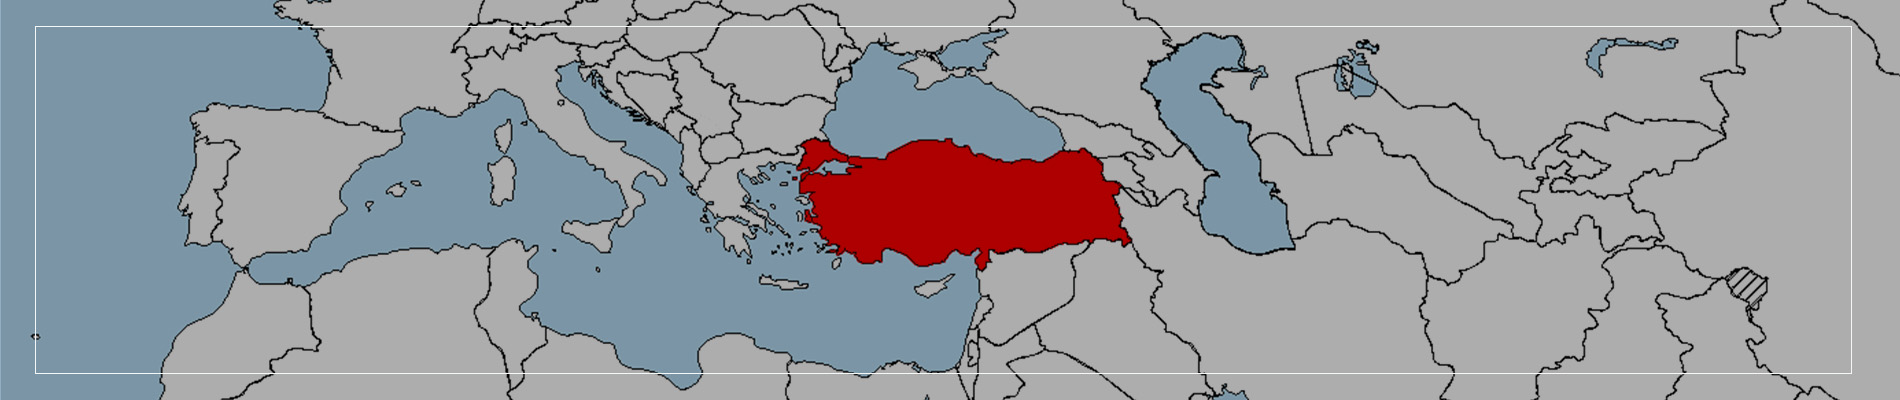 2. Turkey has Unique Location